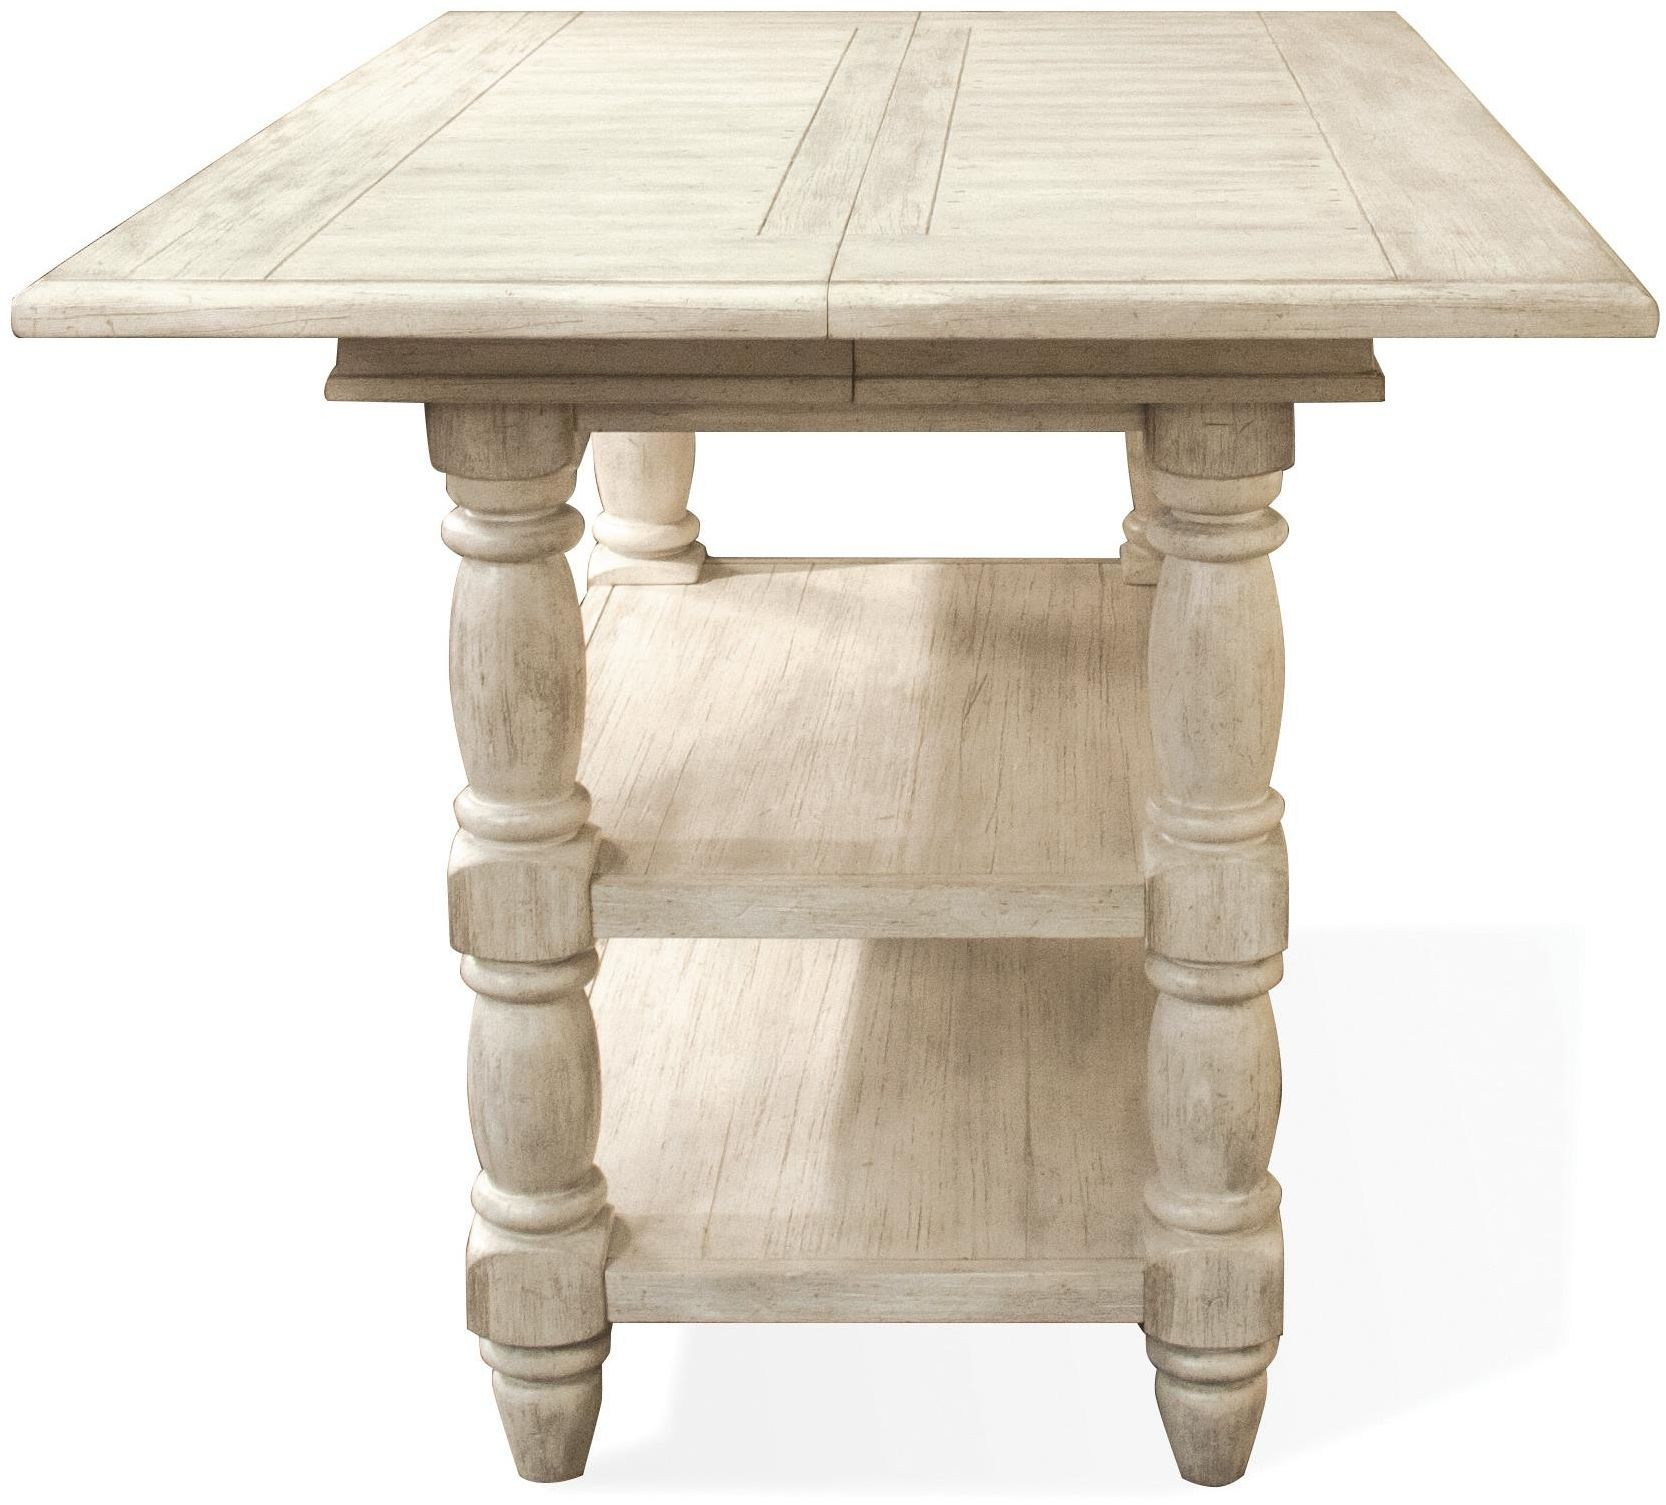 Regan Farmhouse White Extendable Counter Height Dining Table From Riverside Furniture Coleman